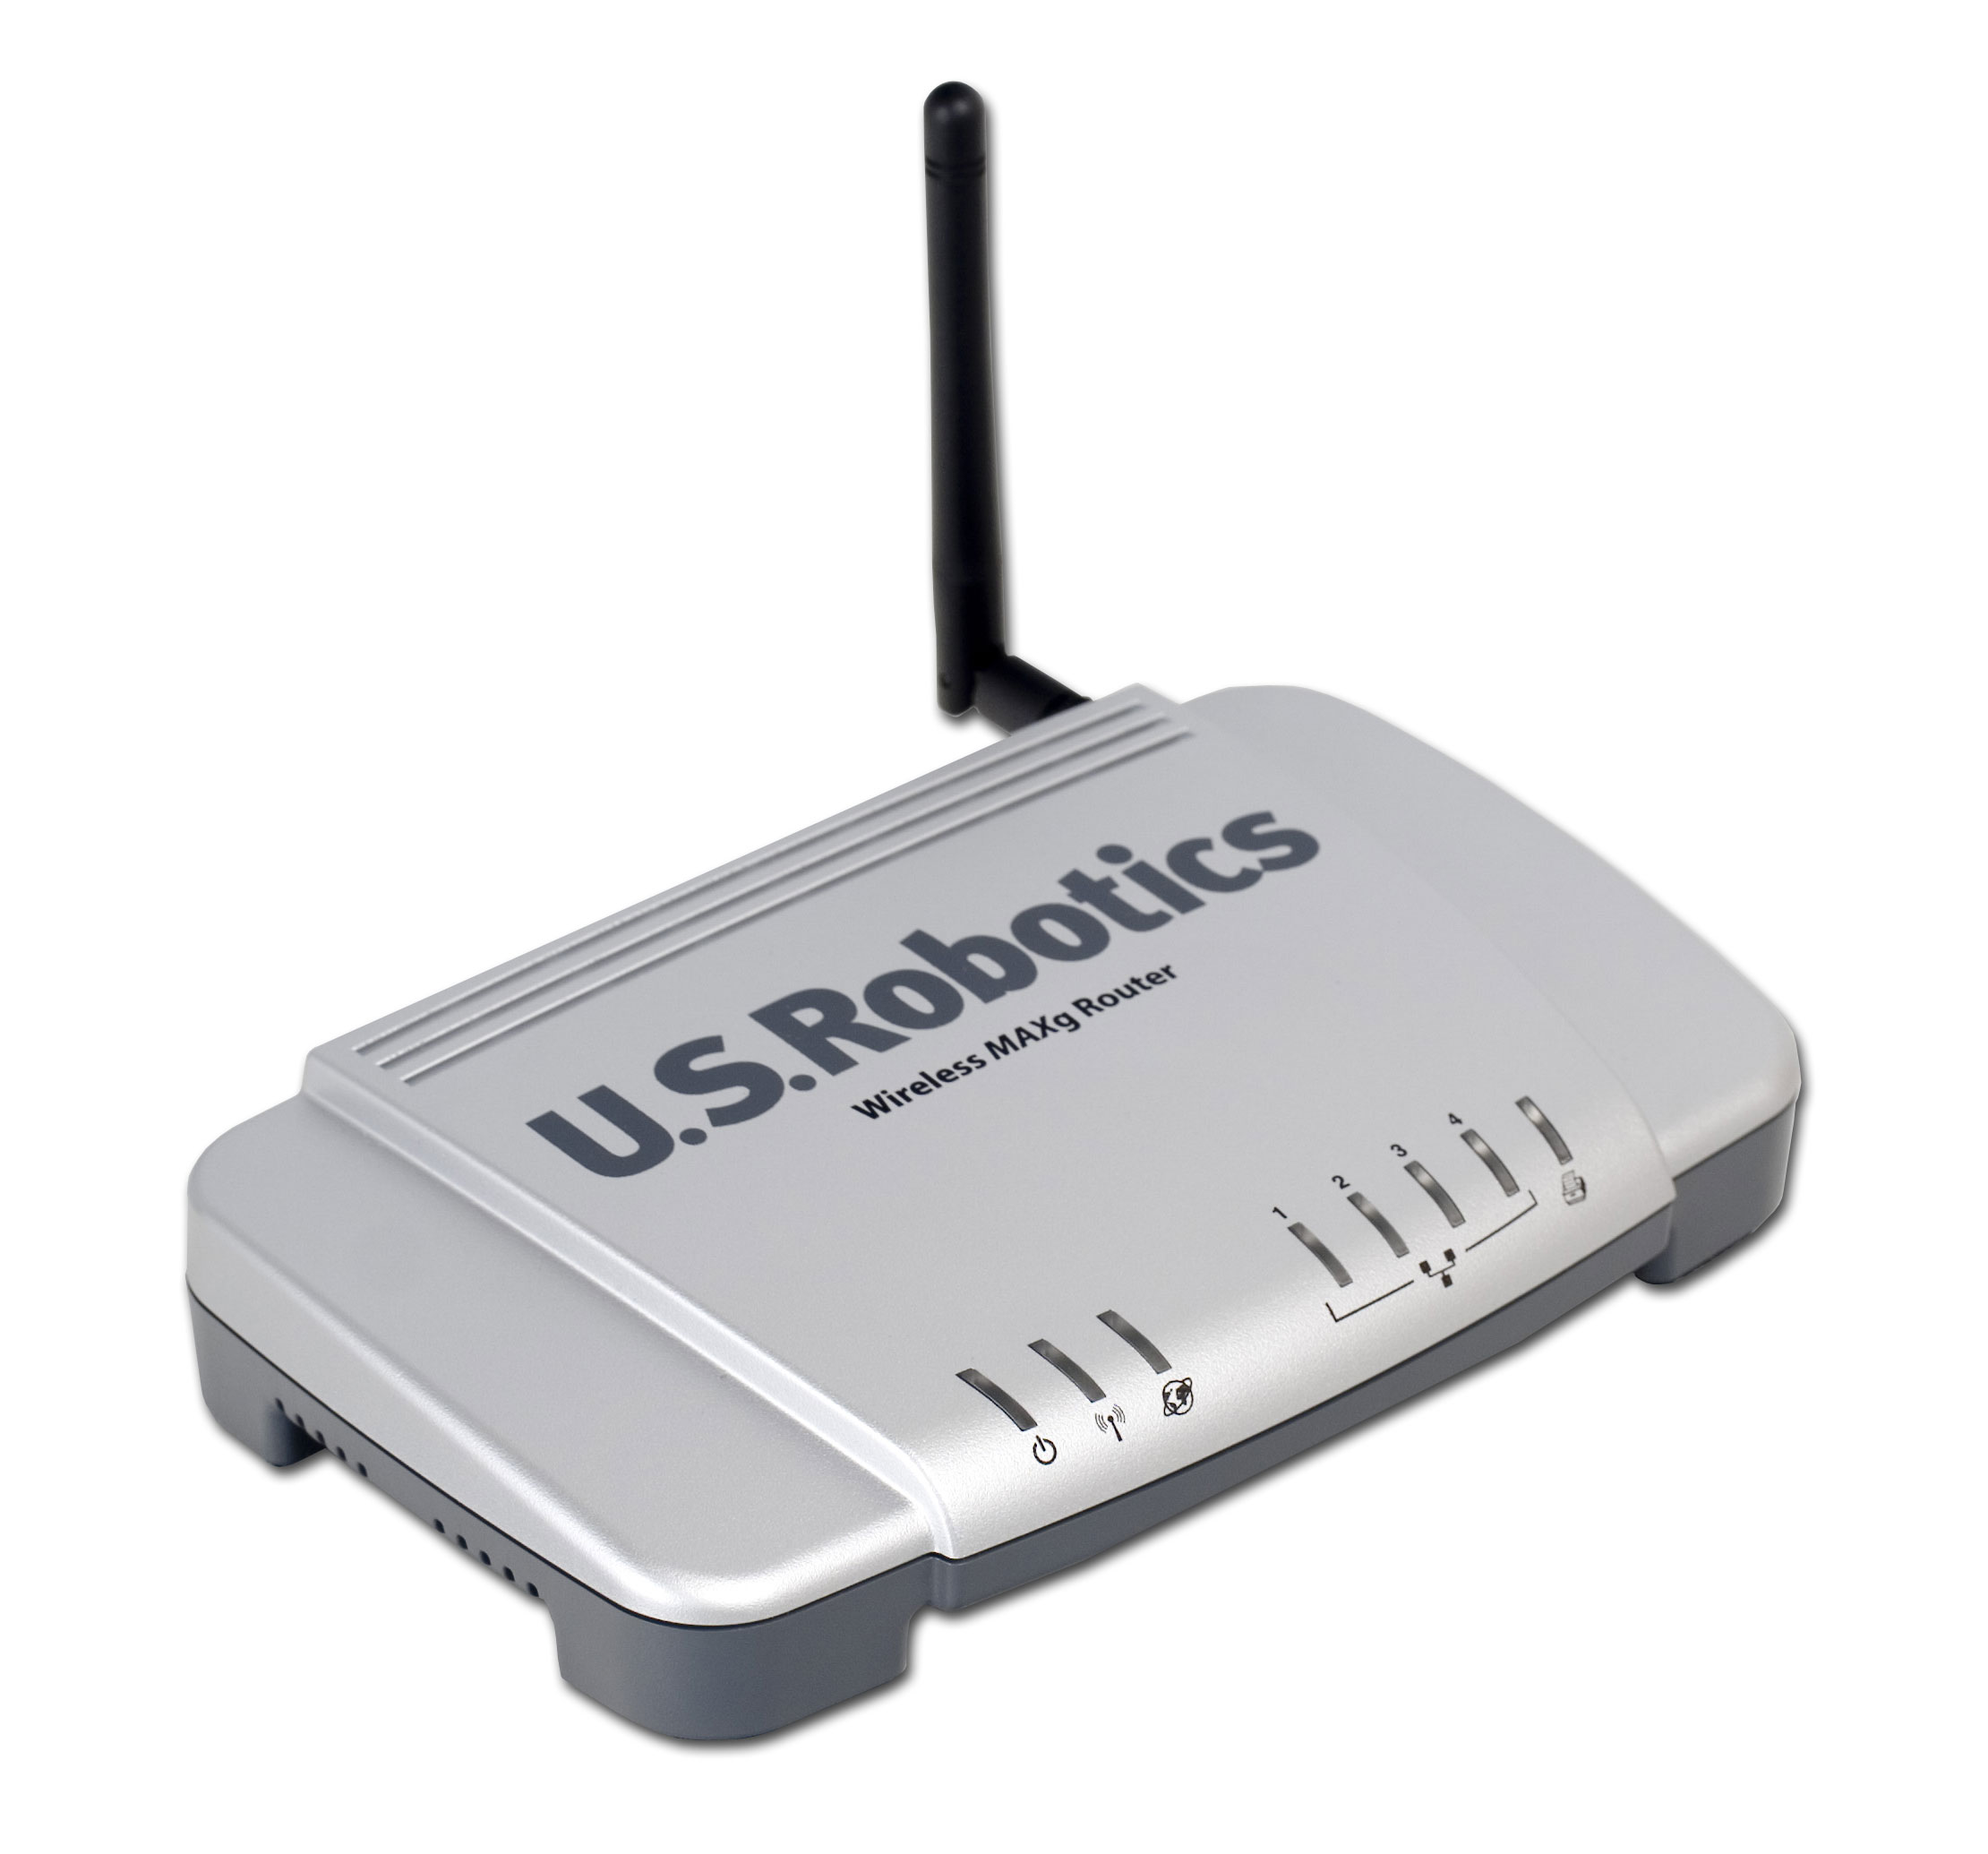 The USRobotics USR5461 router with 54mbps WiFi, 4 100mbps ETH-ports and ...